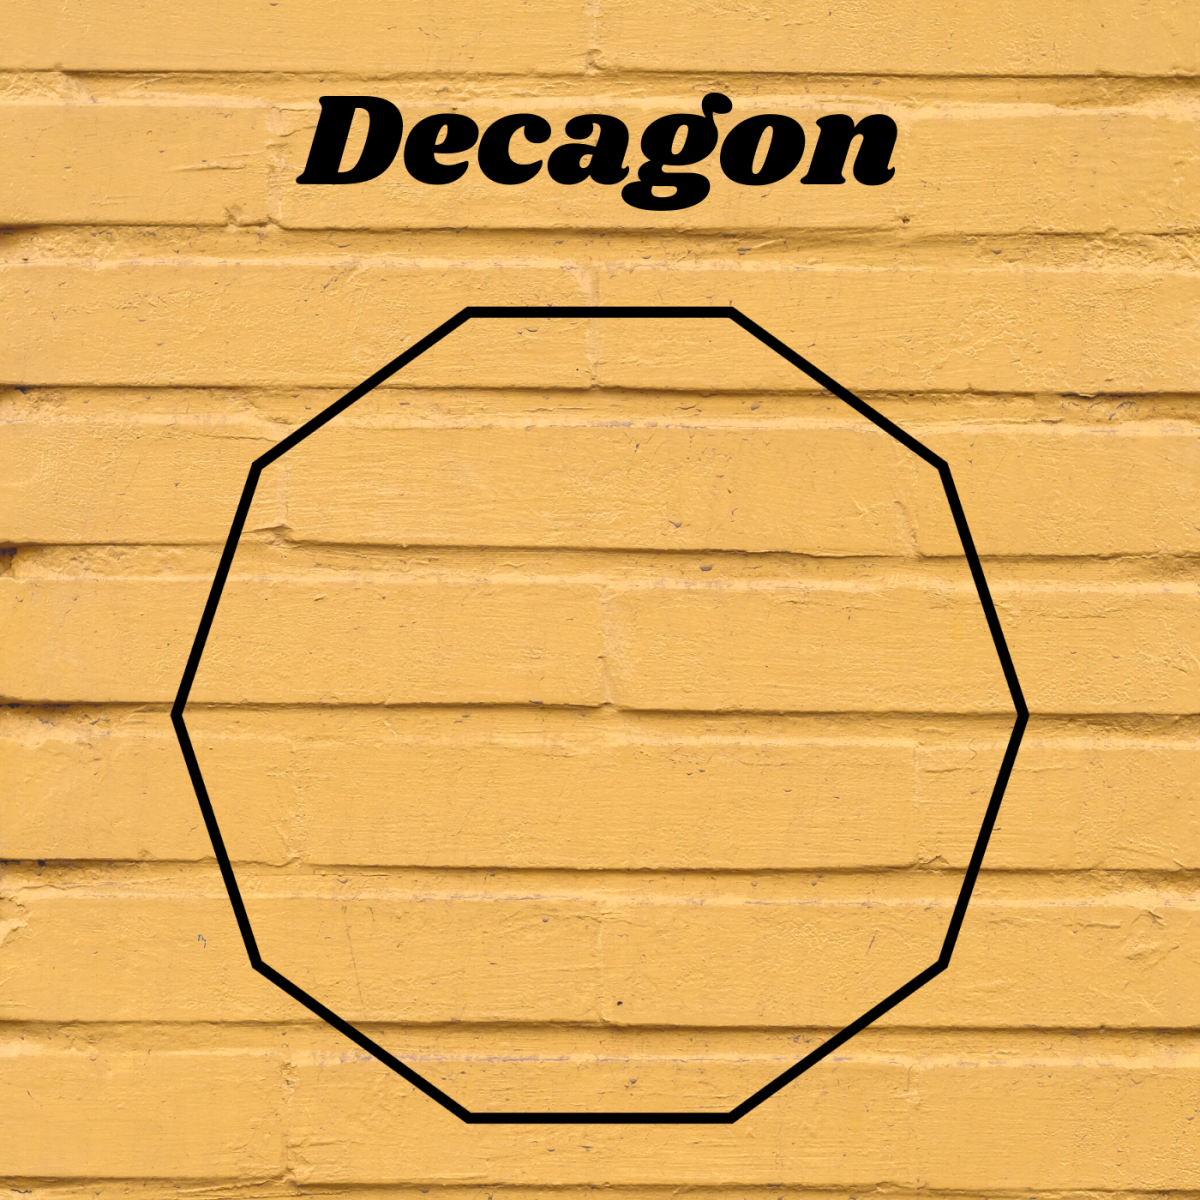 Decagons have 10 sides.